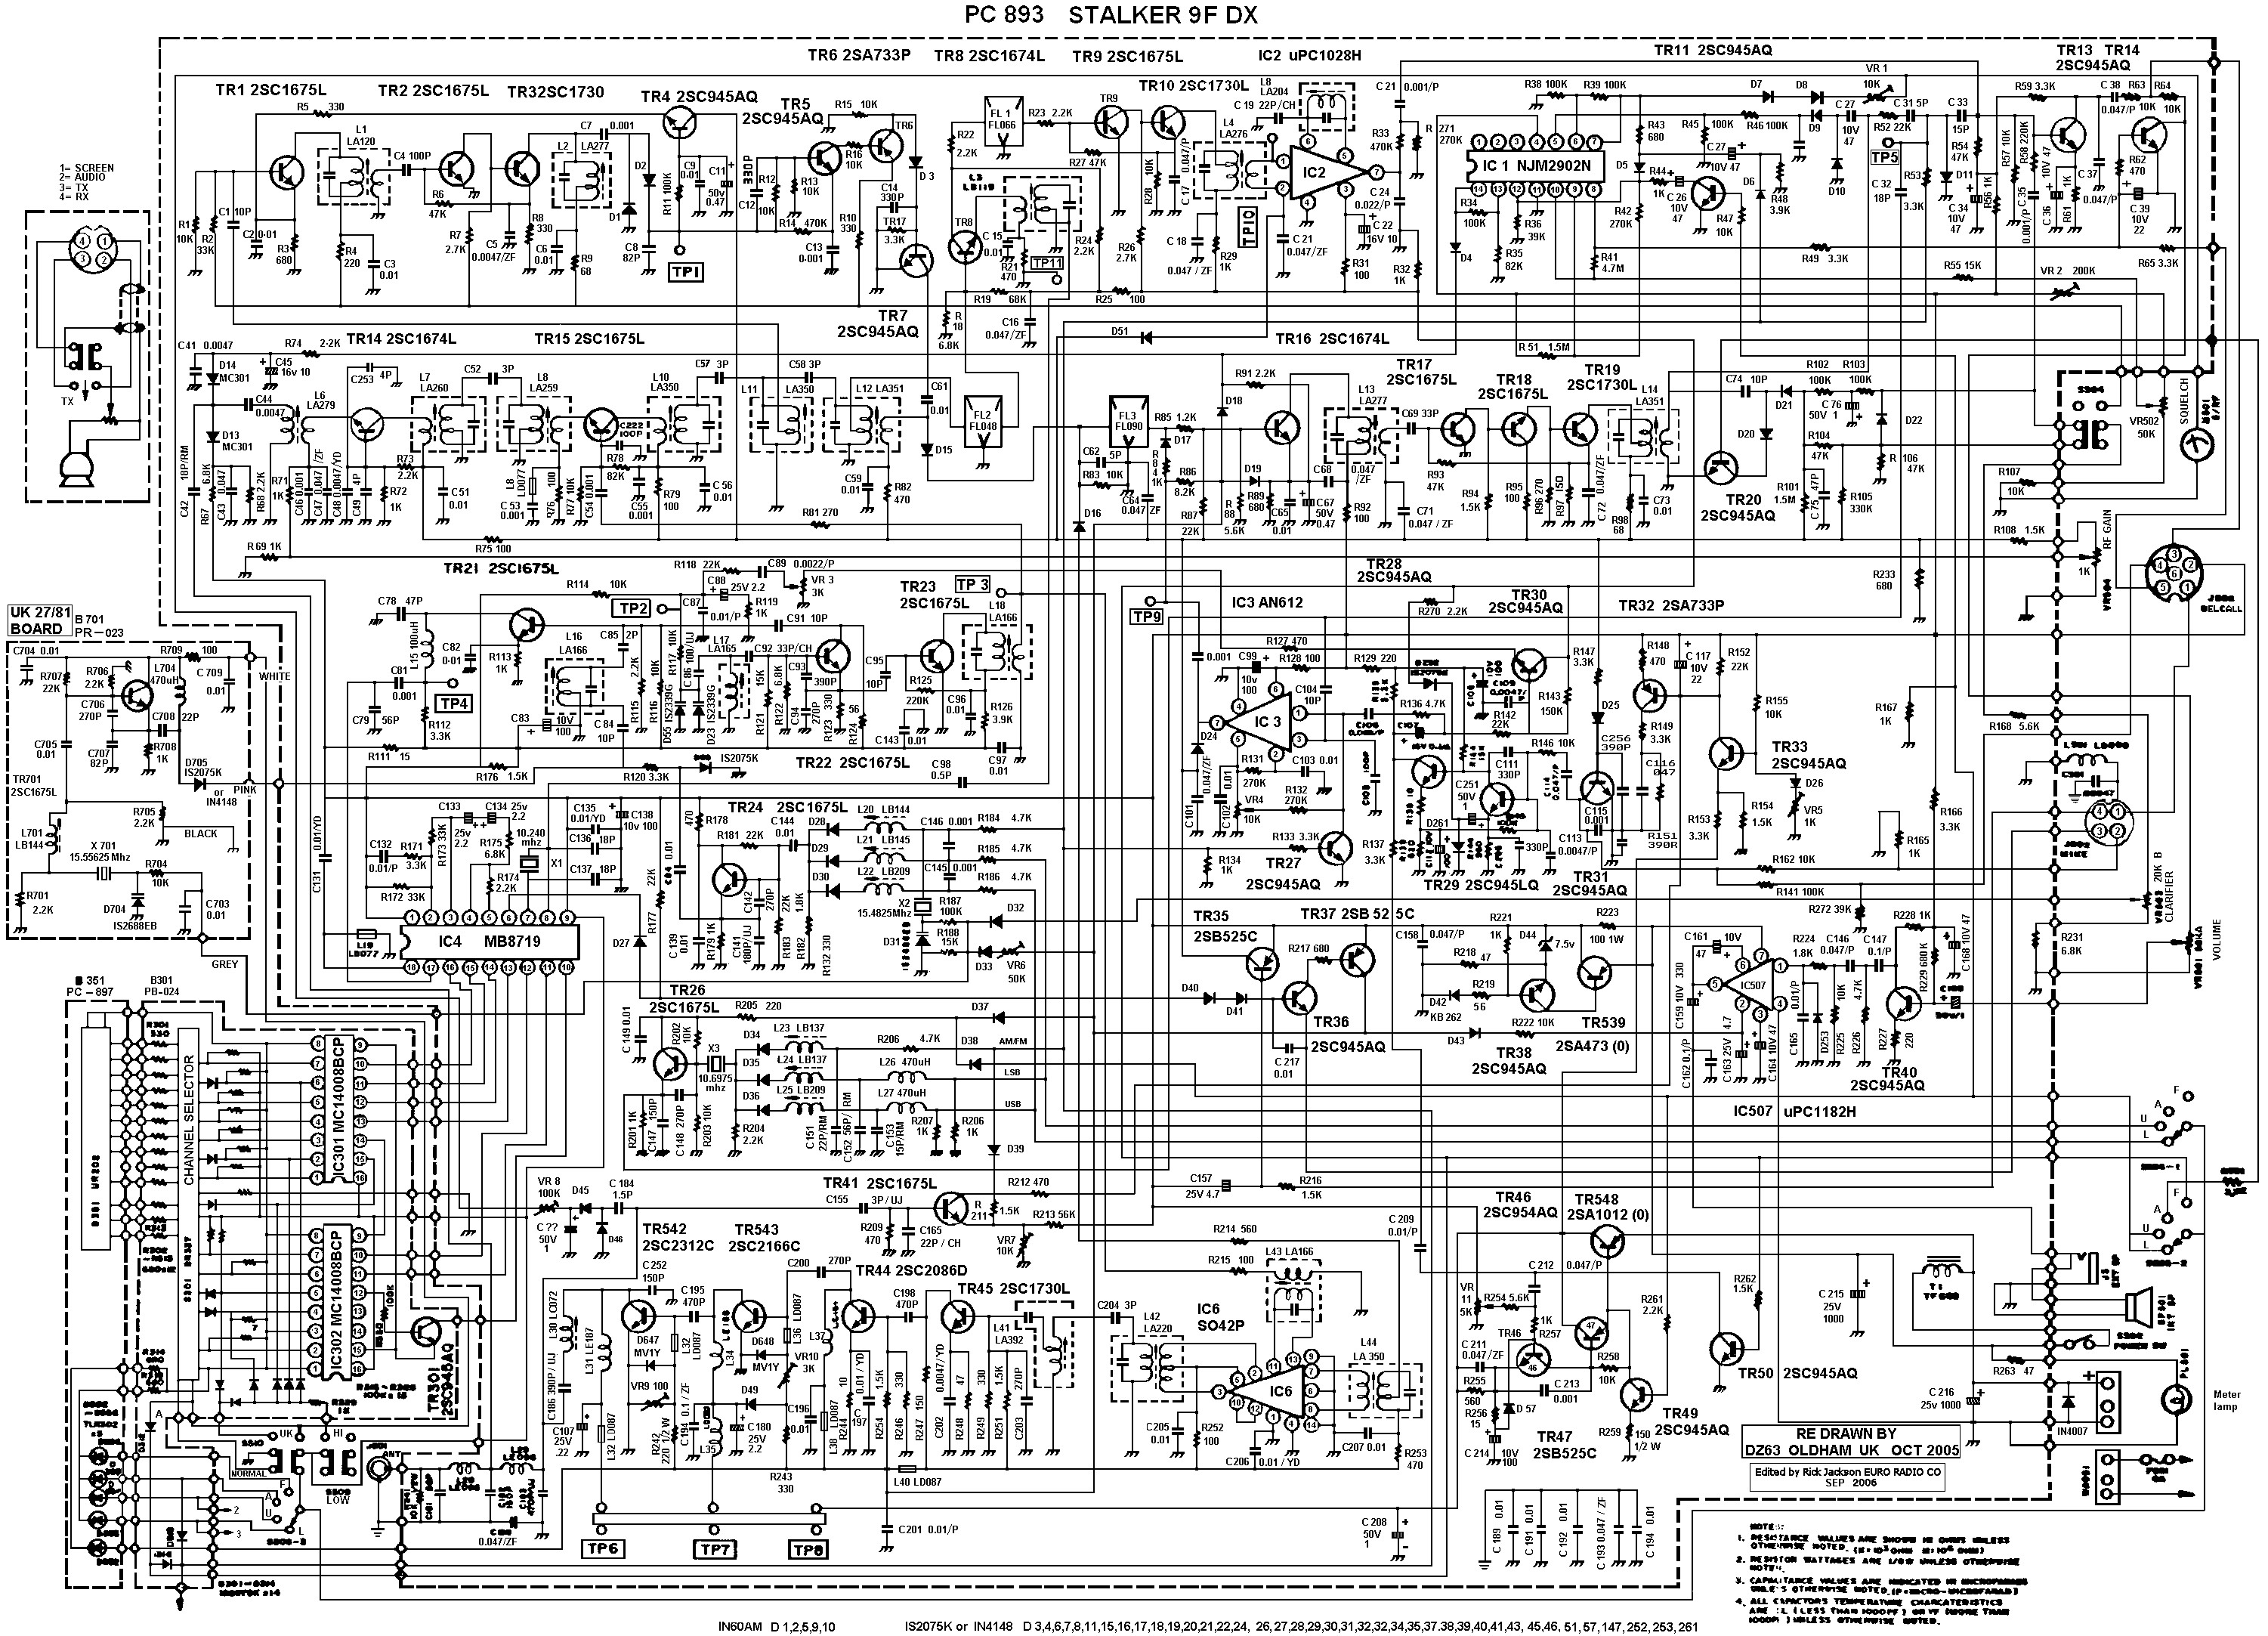 Fm 741 Op Amp Power 2n2219 Layout Suggested Printed Circuit Board